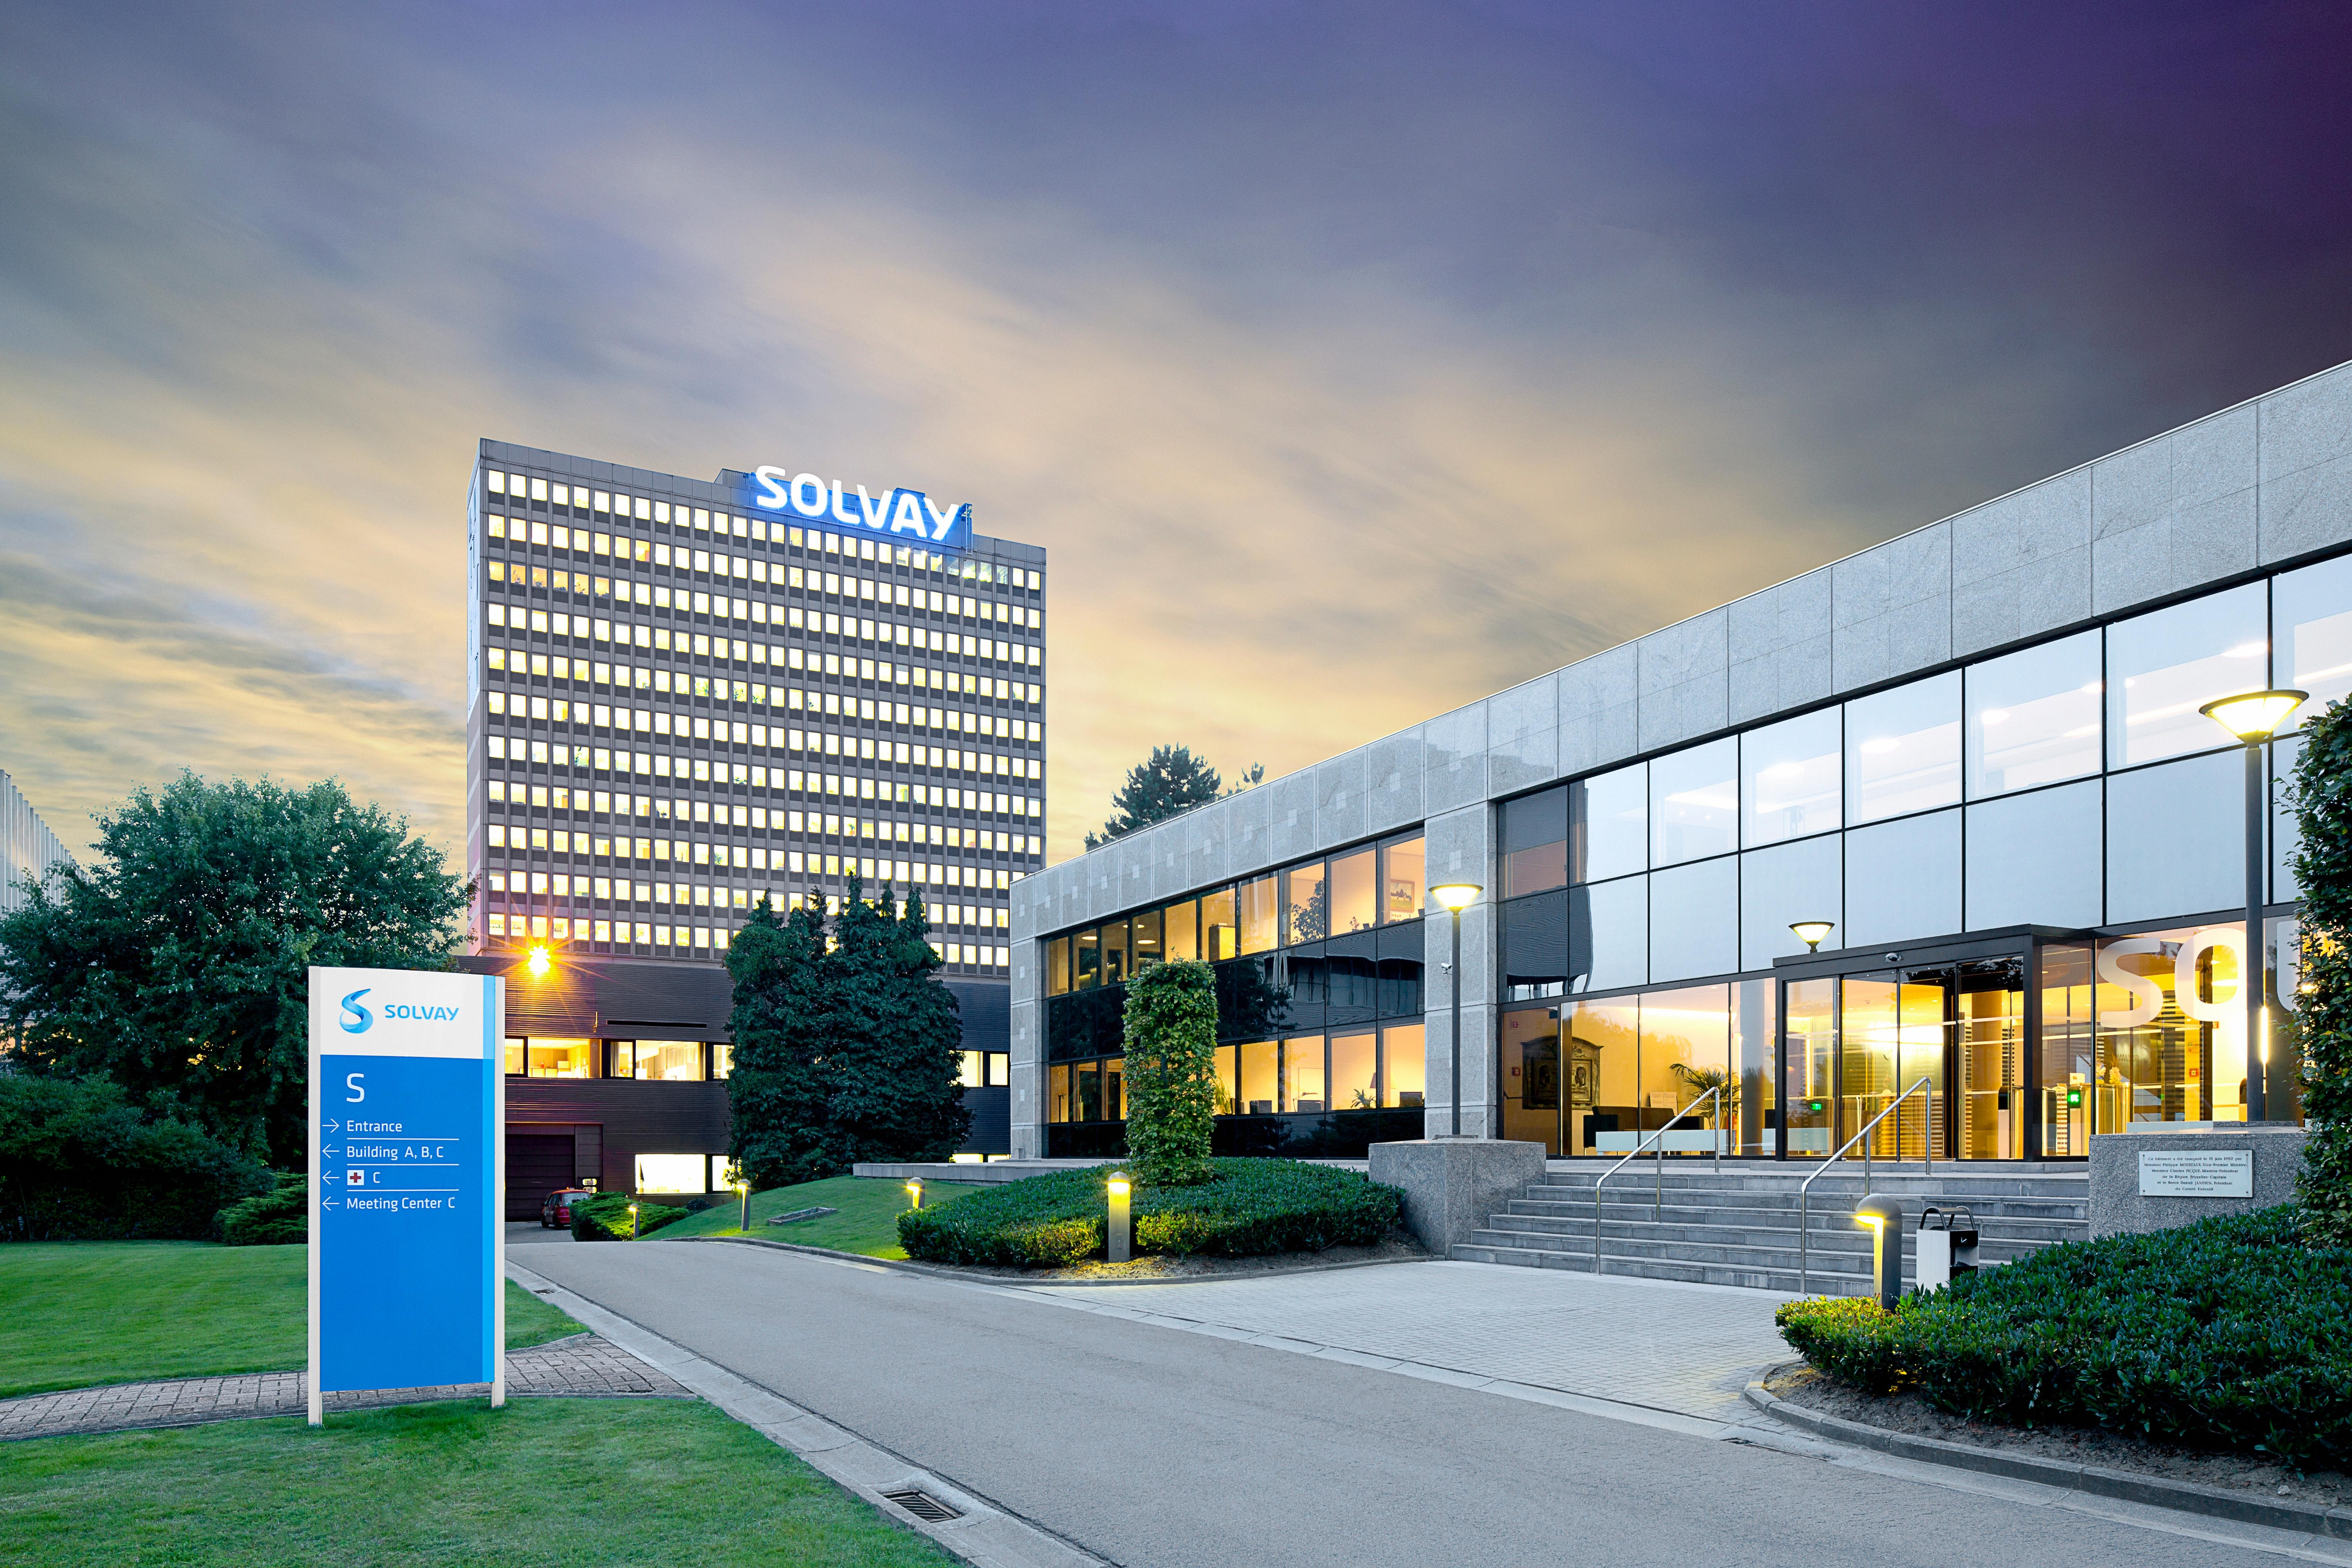 Solvay's-polymers-division-helps-fuel-profit-rise